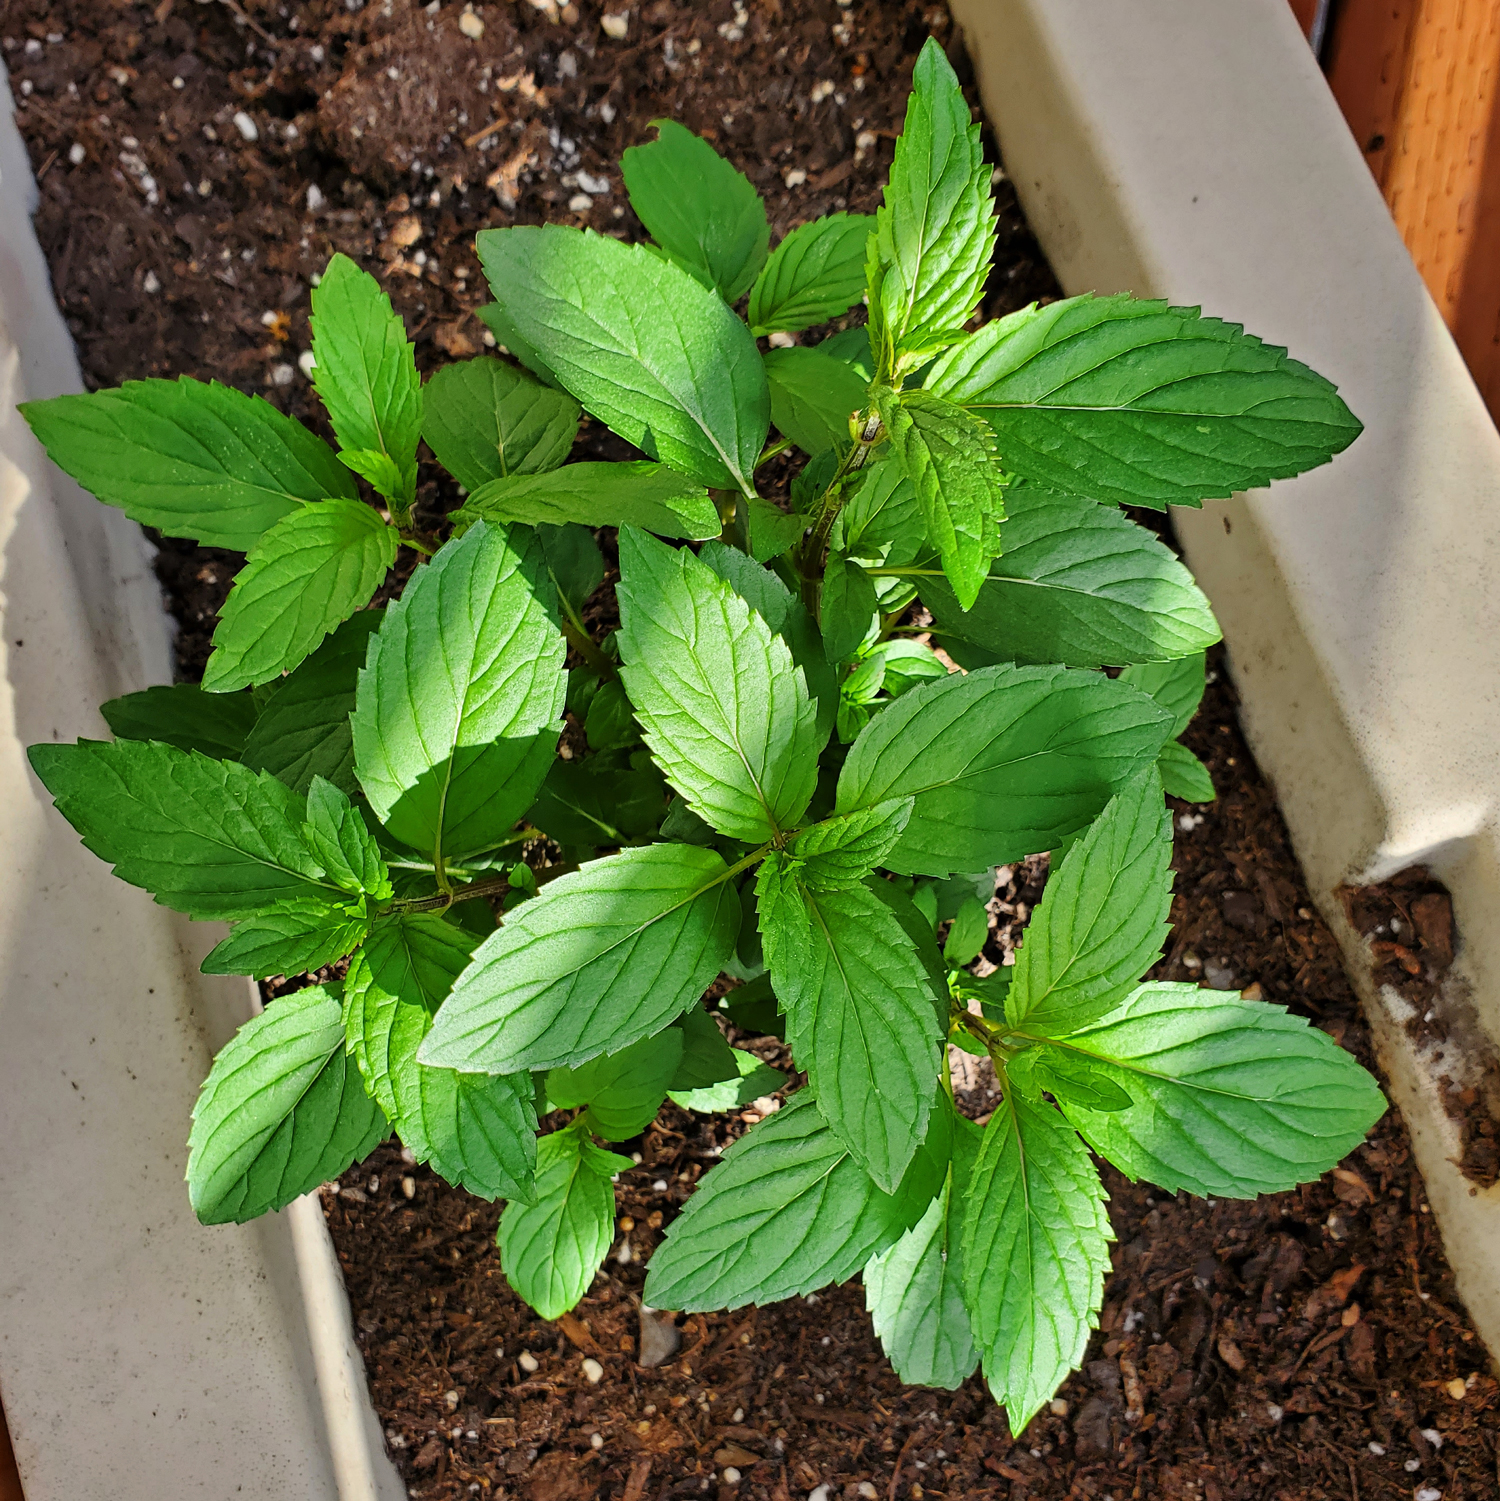 Spearmint looking healthy and ready to grow in spring